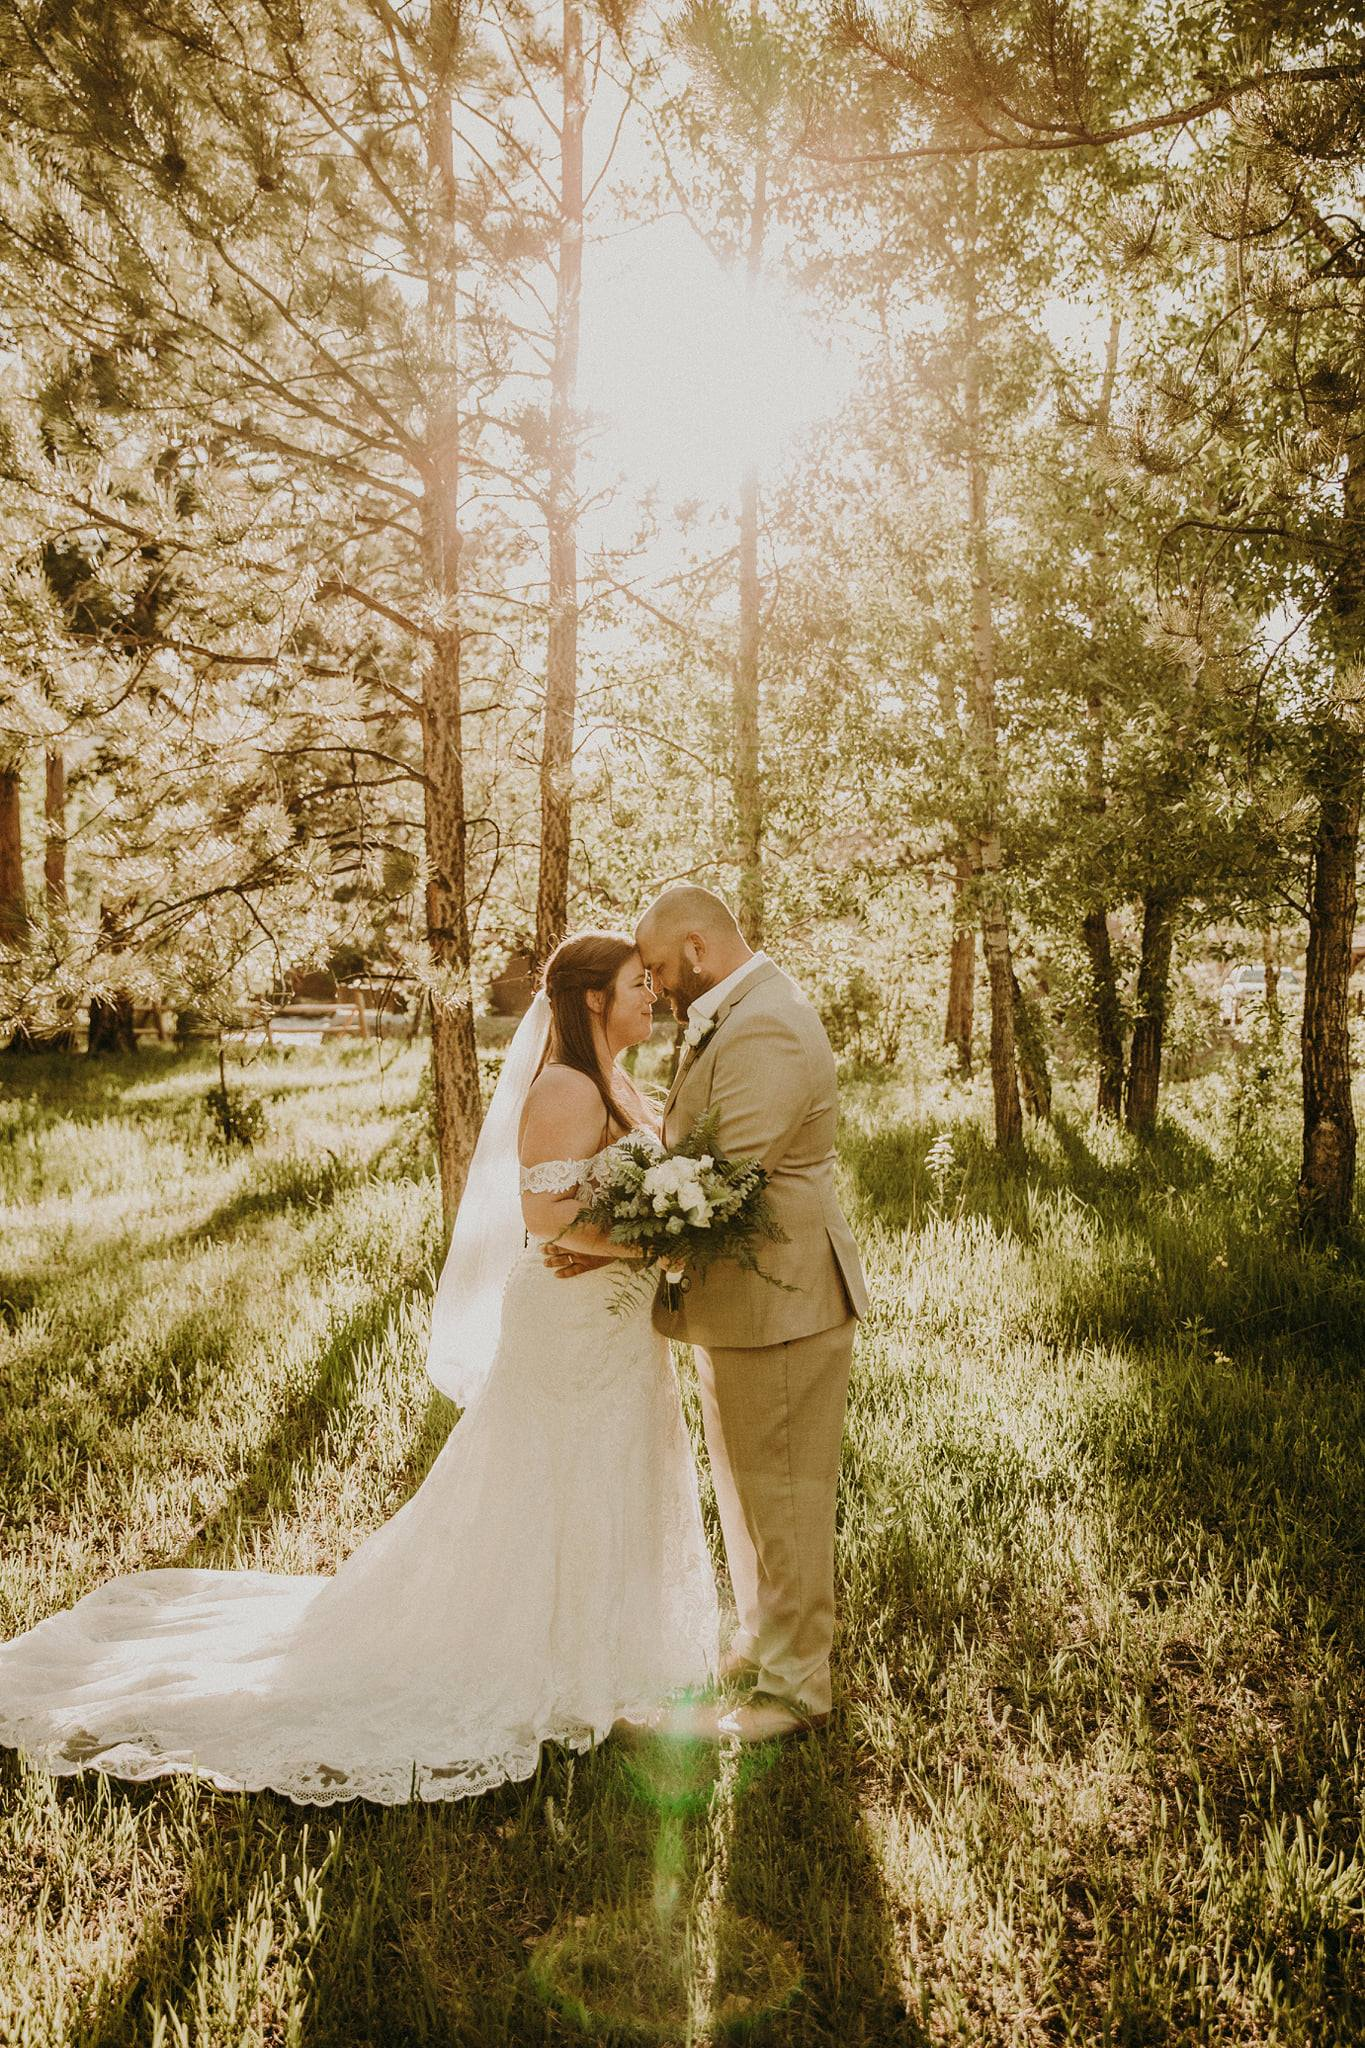 events & attractions WEDDINGS & EVENTS Kail Stroud 9